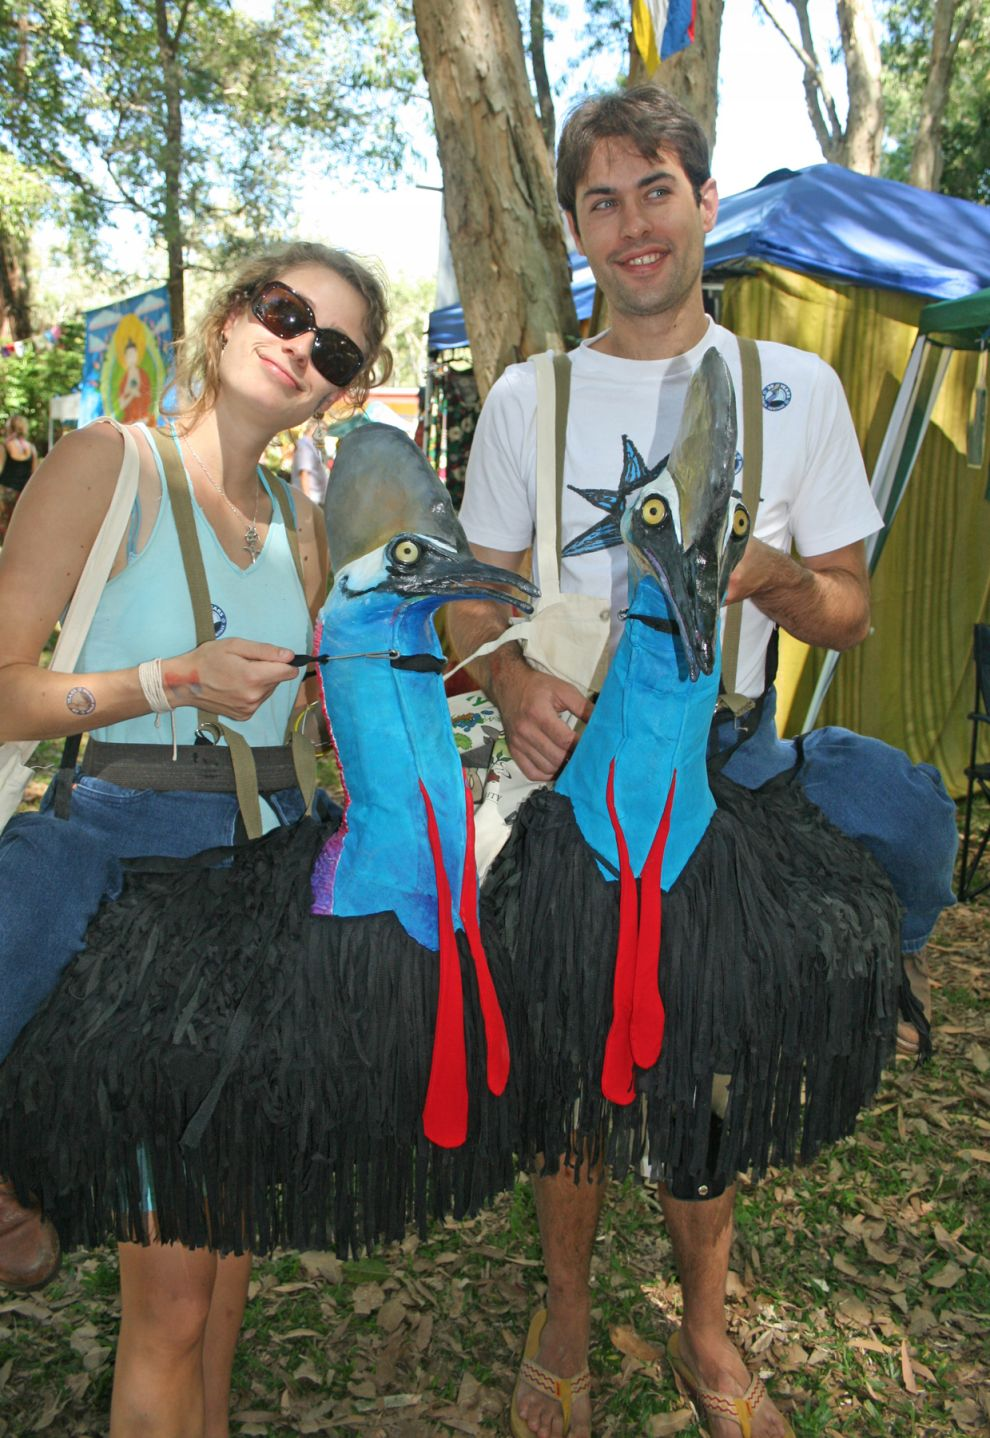 Cassowary riders at Envirofiesta Photographer: Campbell Clarke